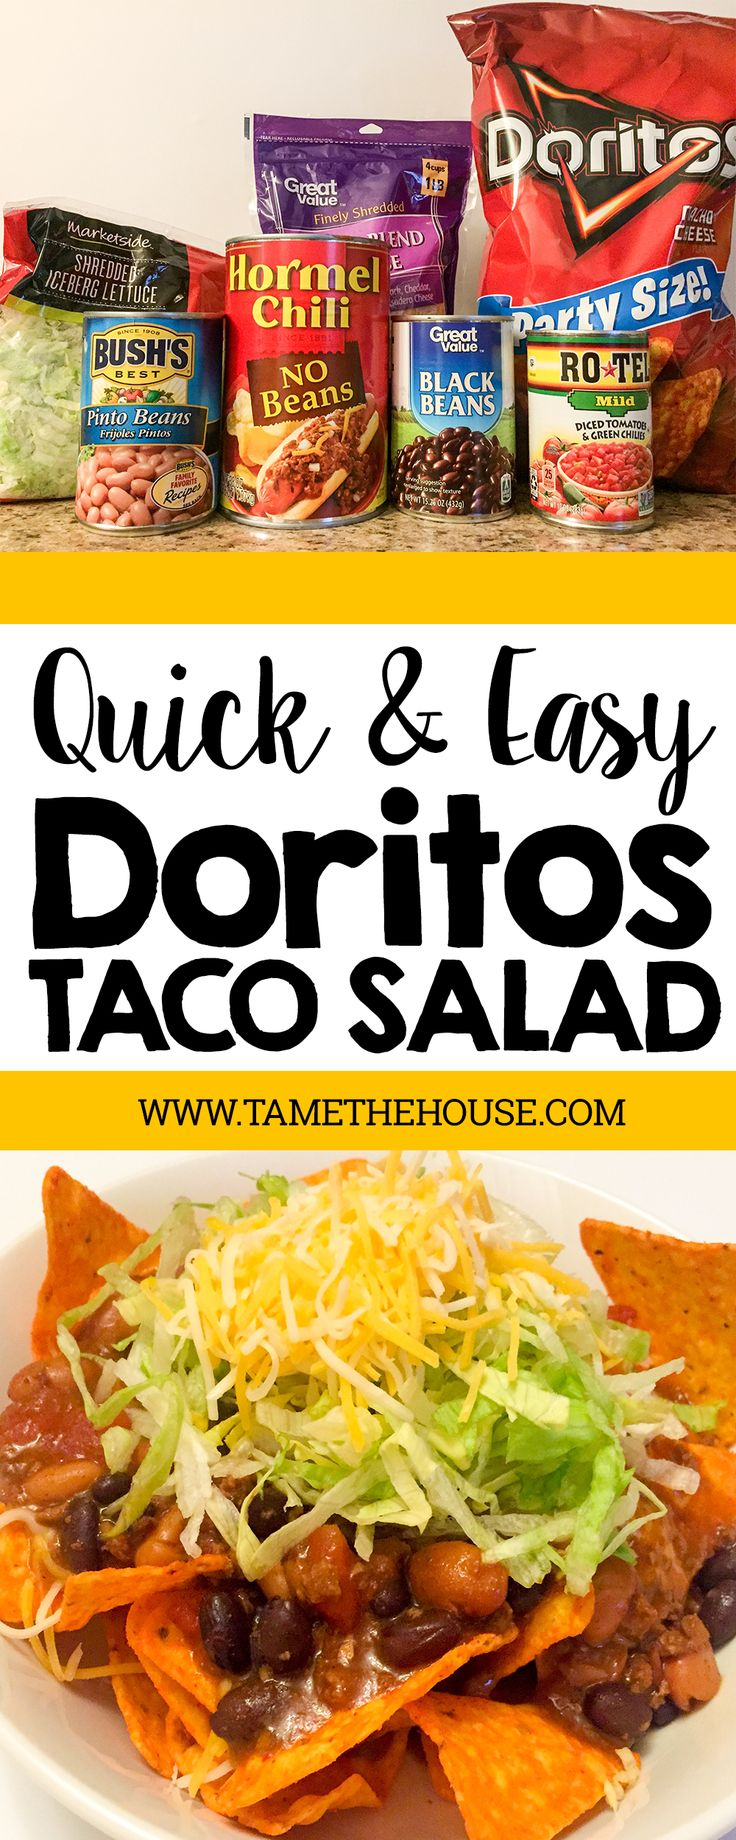 Here's a quick and easy recipe for Doritos taco salad. It only takes a few ingredients and about 20 minutes. Perfect for family night or a quick meal when you're short on time | Tame the House